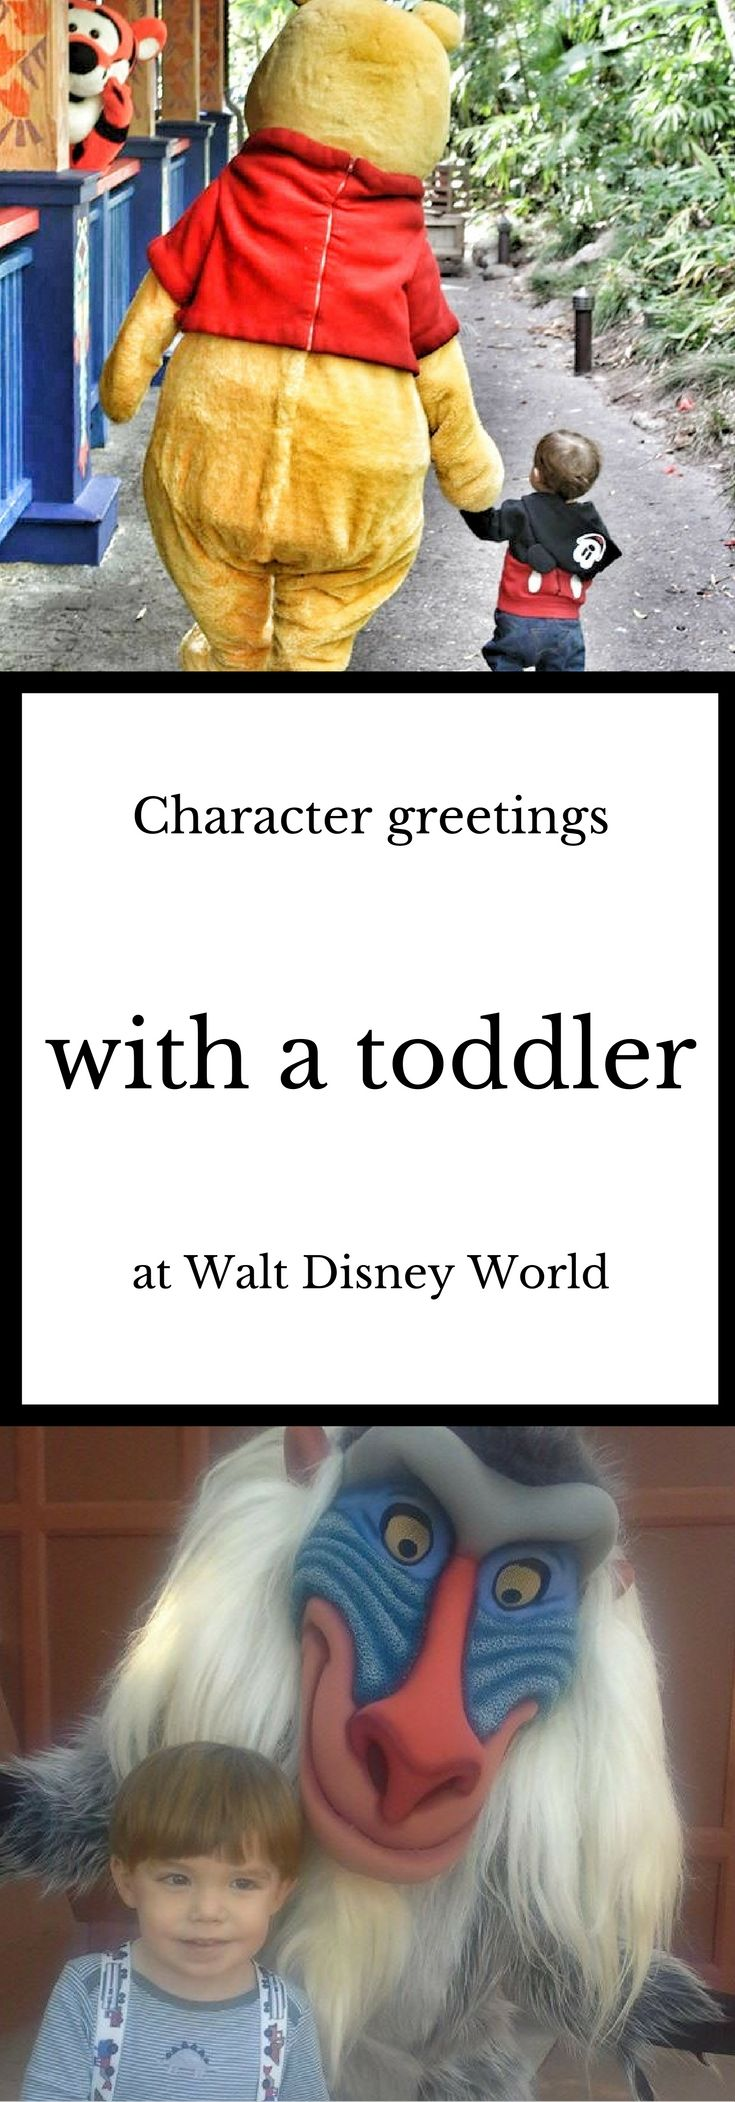 Character Greetings With A Toddler At Walt Disney World Pinterest